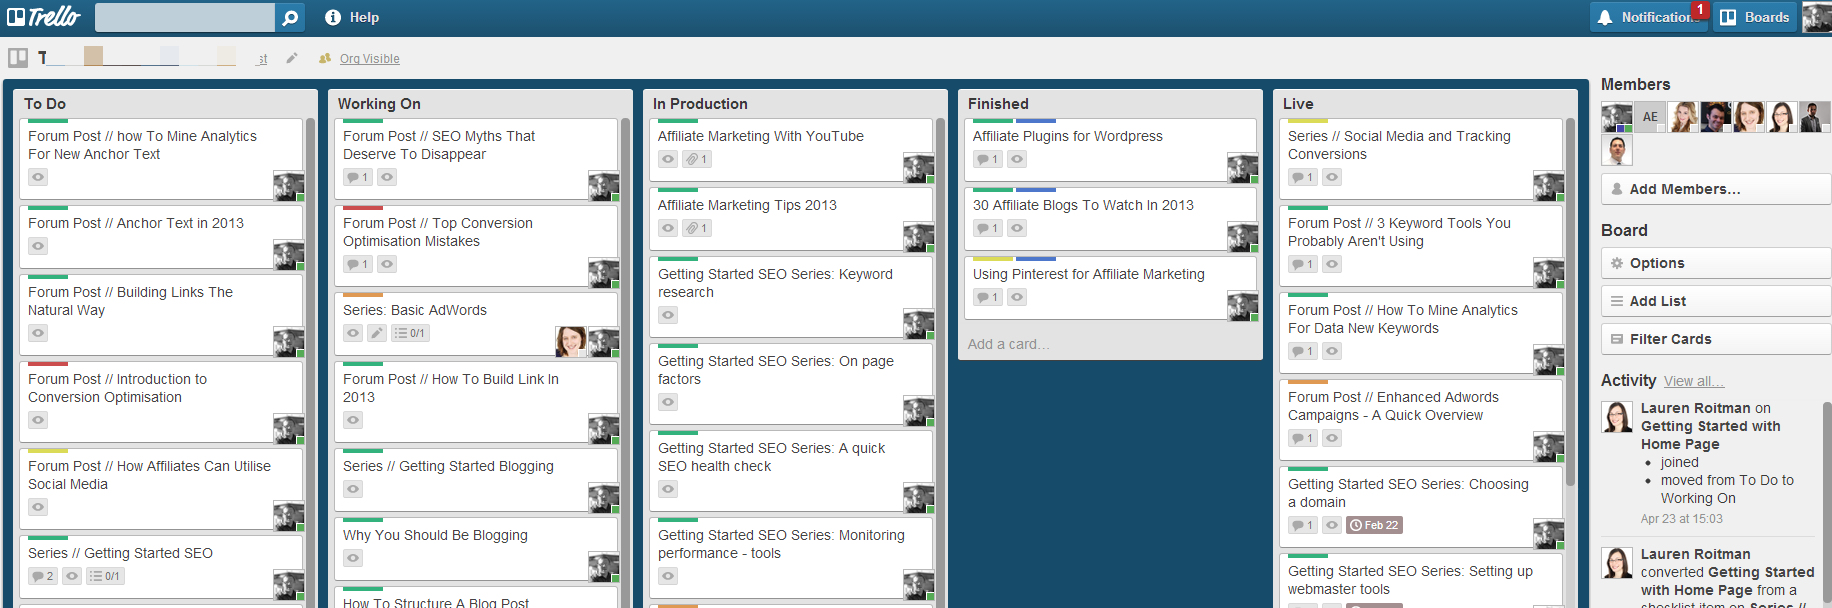 Managing Your Time And Projects With trello